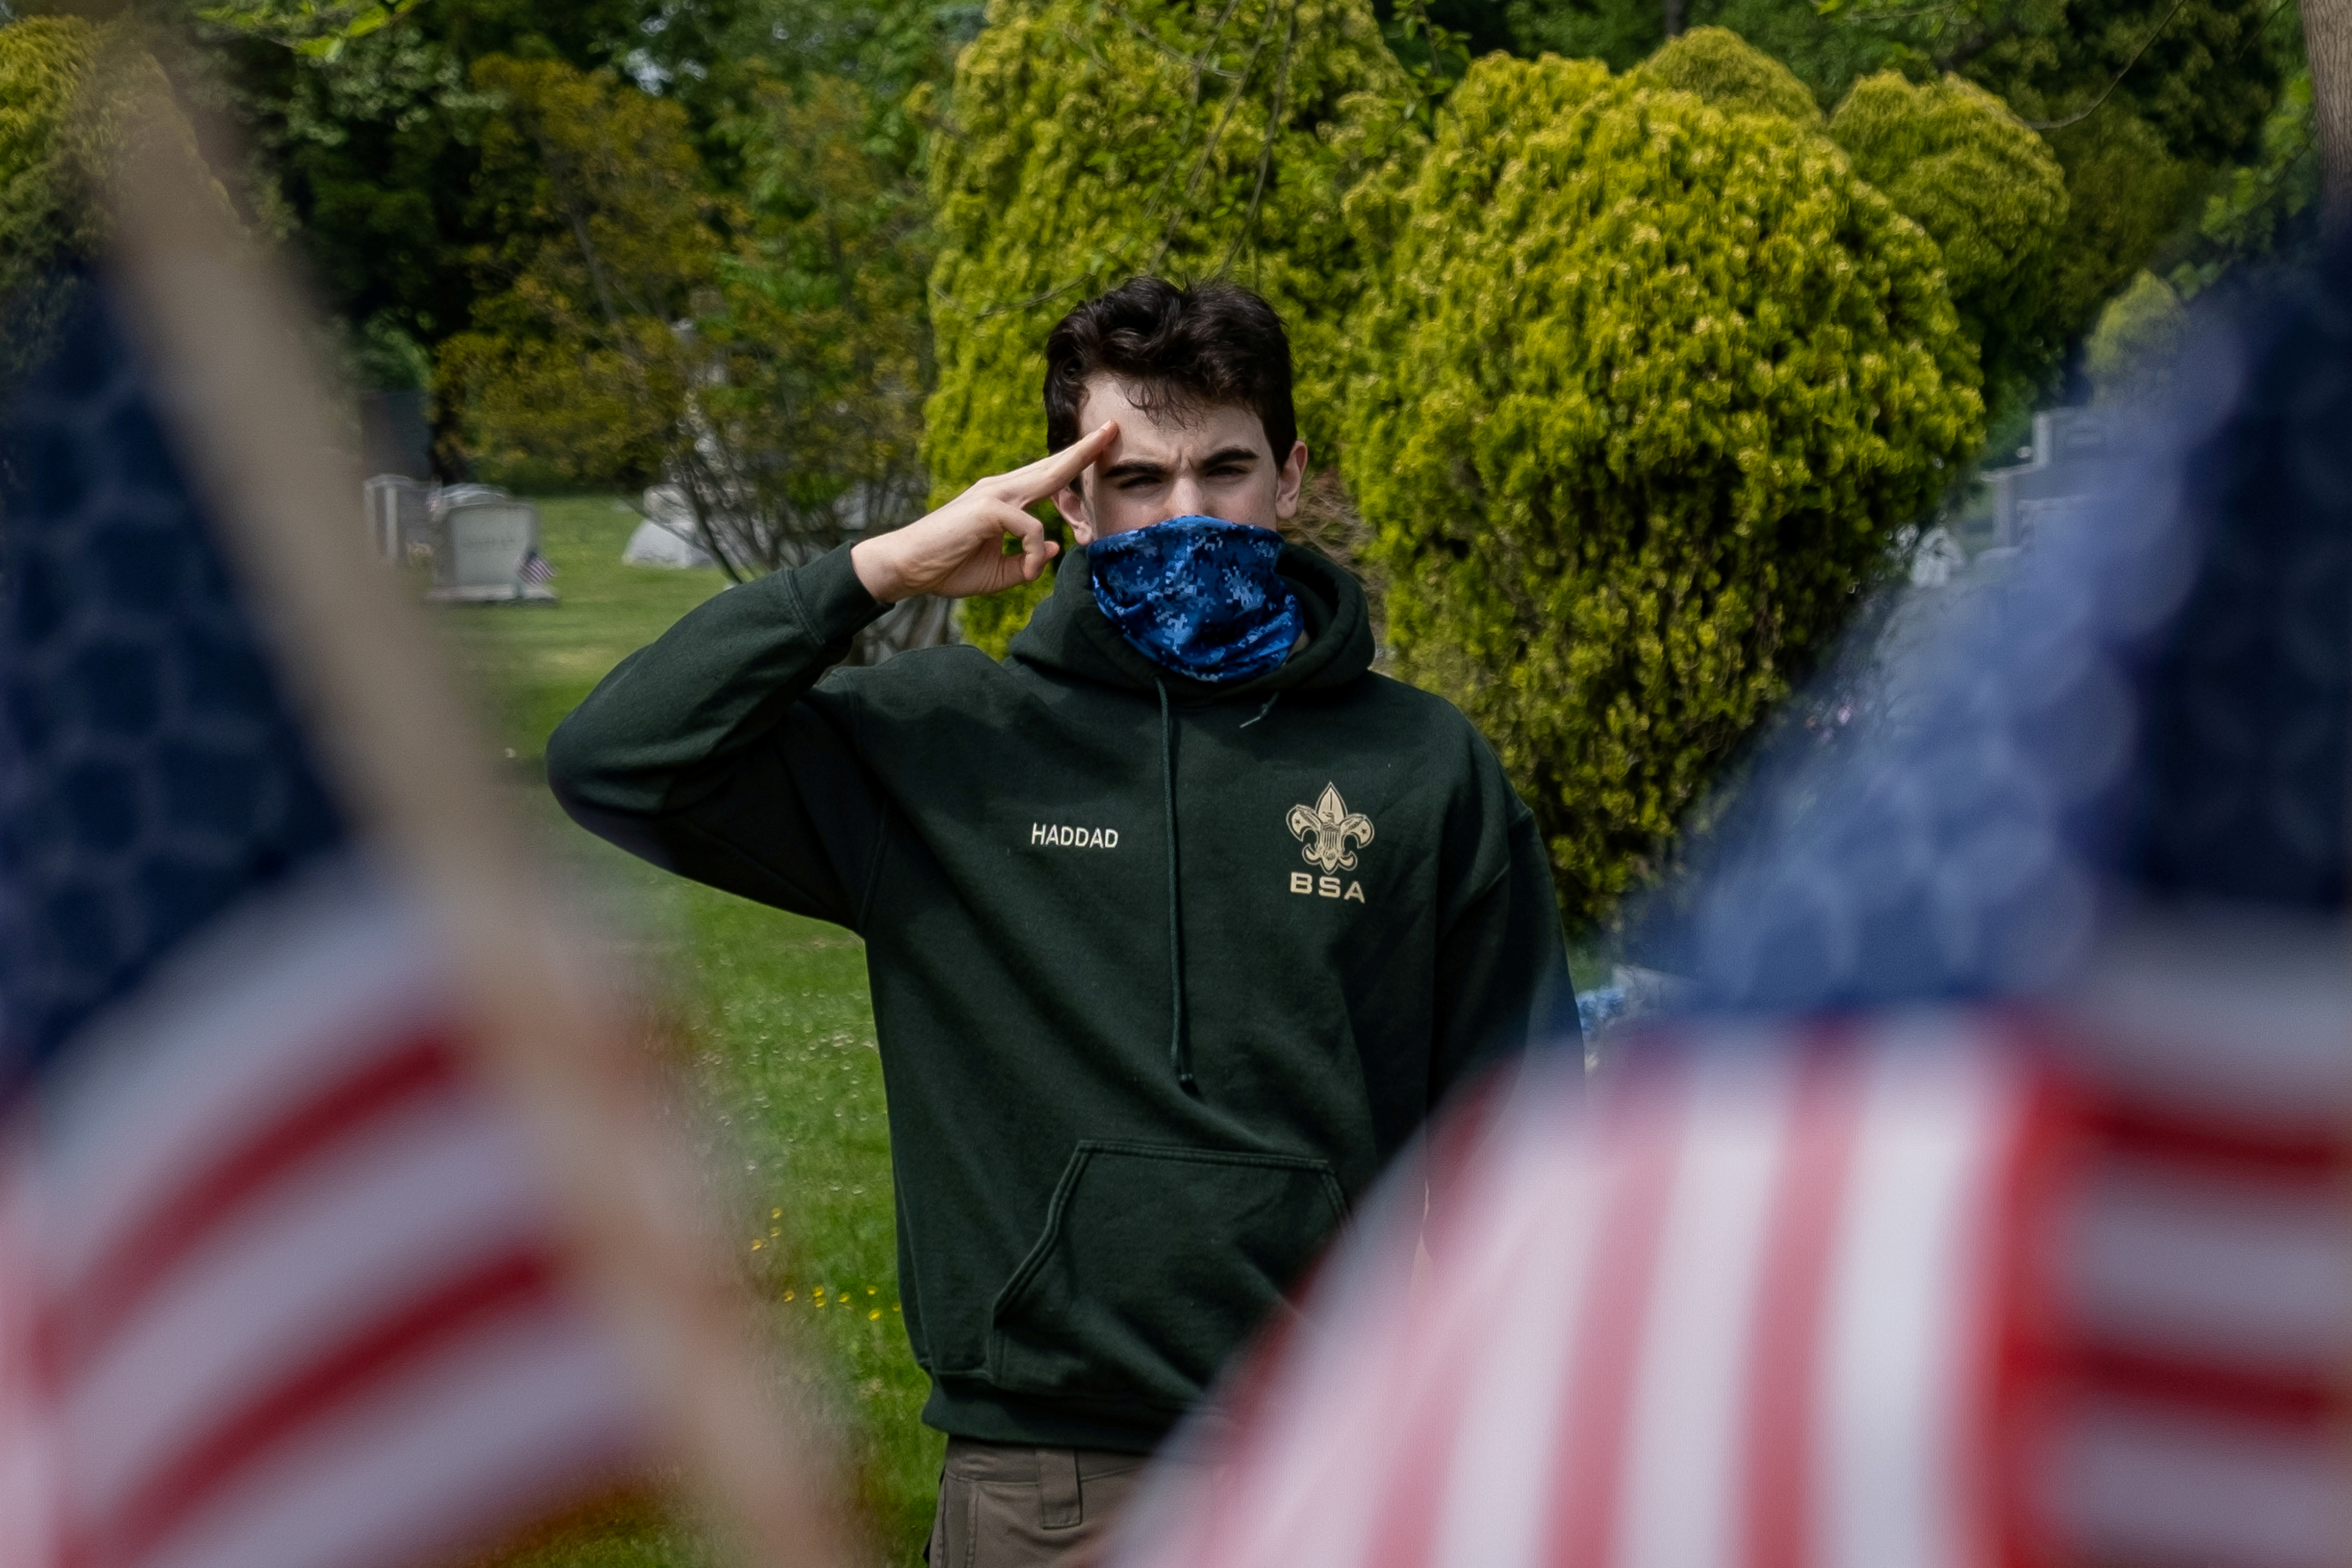 A member of Boy Scouts of America wearing a protective mask salutes at a ceremony for Veterans who are unable to give military honors during Memorial Day following the outbreak of the coronavirus disease (COVID-19) in the Staten Island borough of New York U.S., May 25, 2020. REUTERS/Jeenah Moon